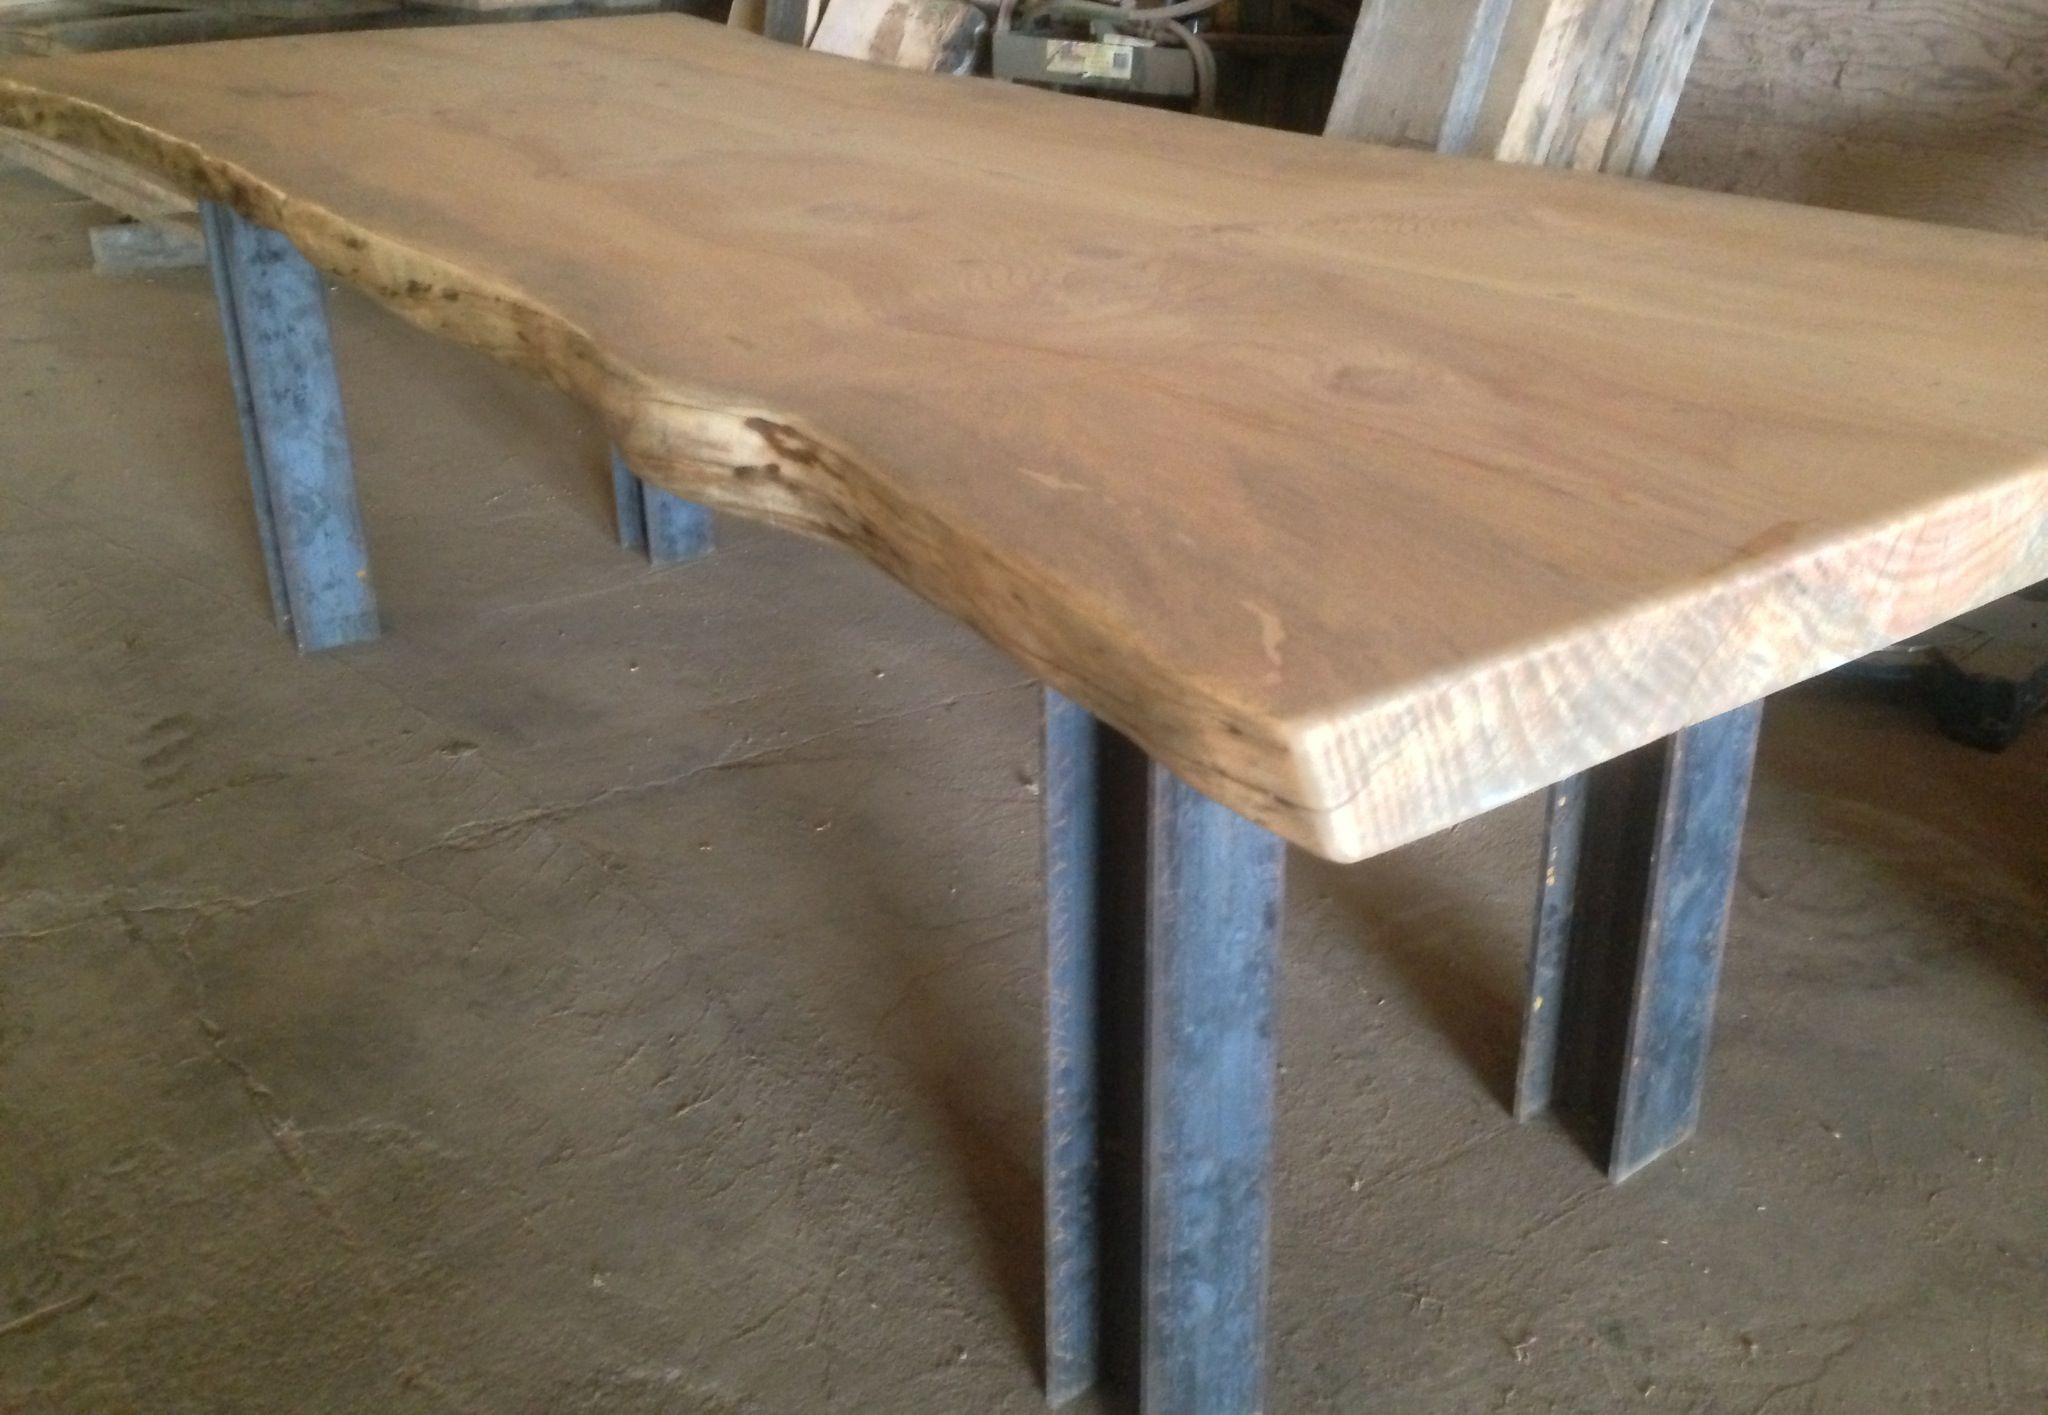 Live Edge Wood Slab Table I Beam Legs Barraca Garagem Ideias